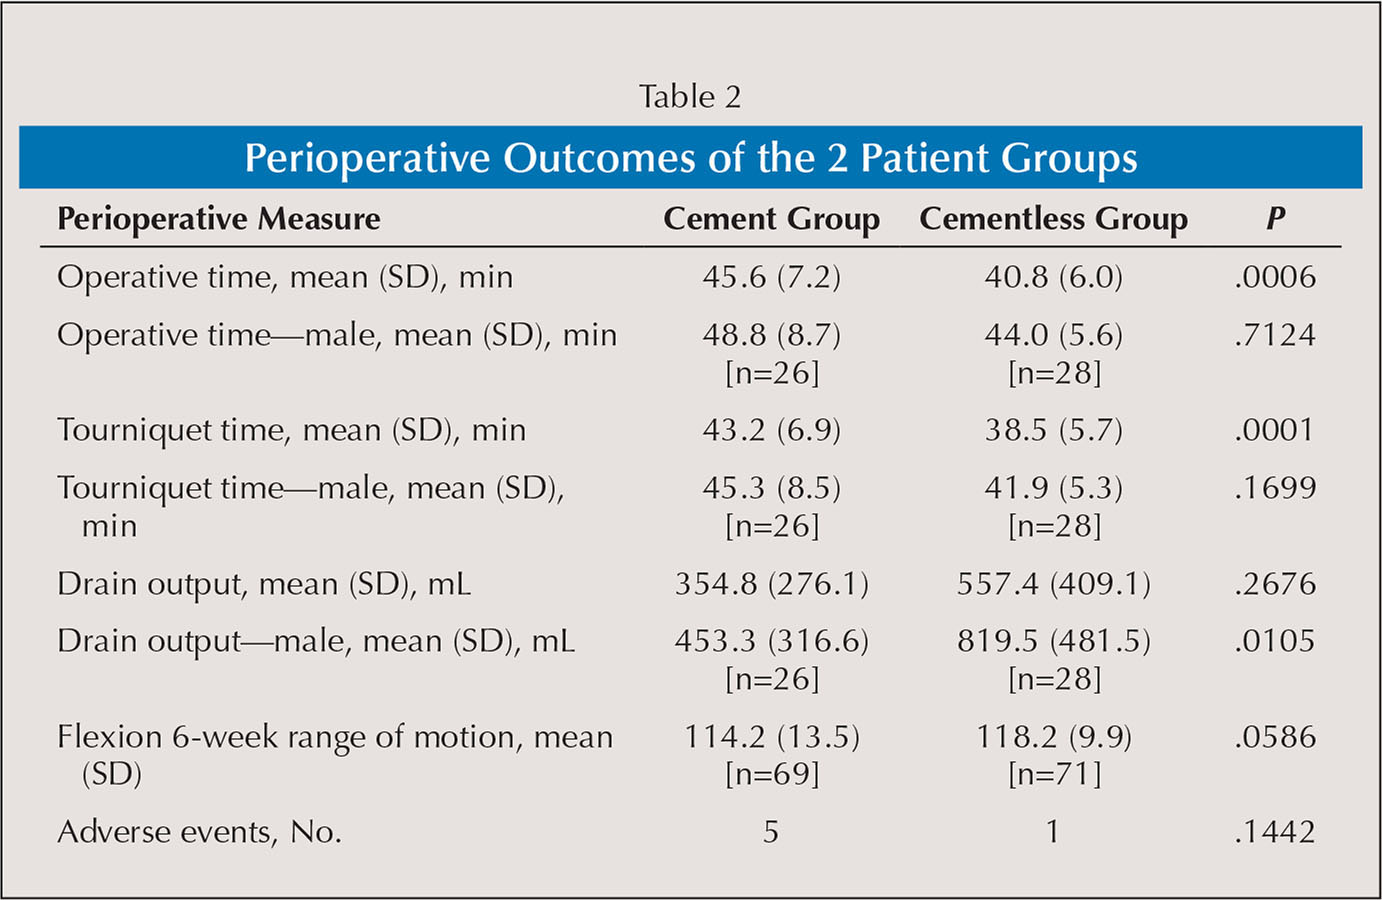 Perioperative Outcomes of the 2 Patient Groups